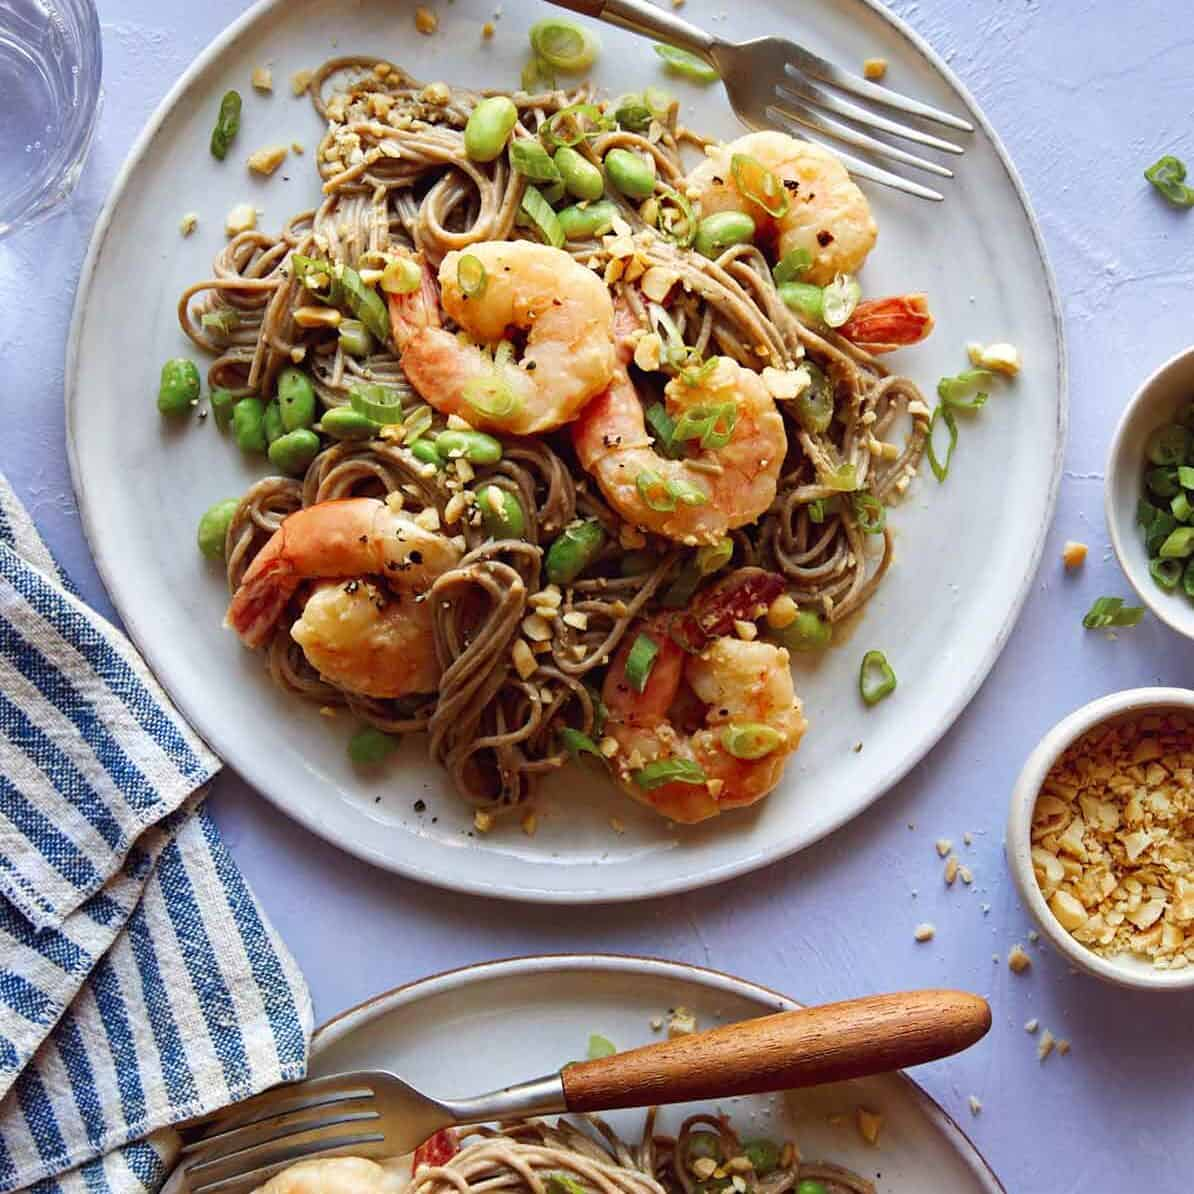 Shrimp and soba noodle recipe on two plates with sesame seeds on the side.